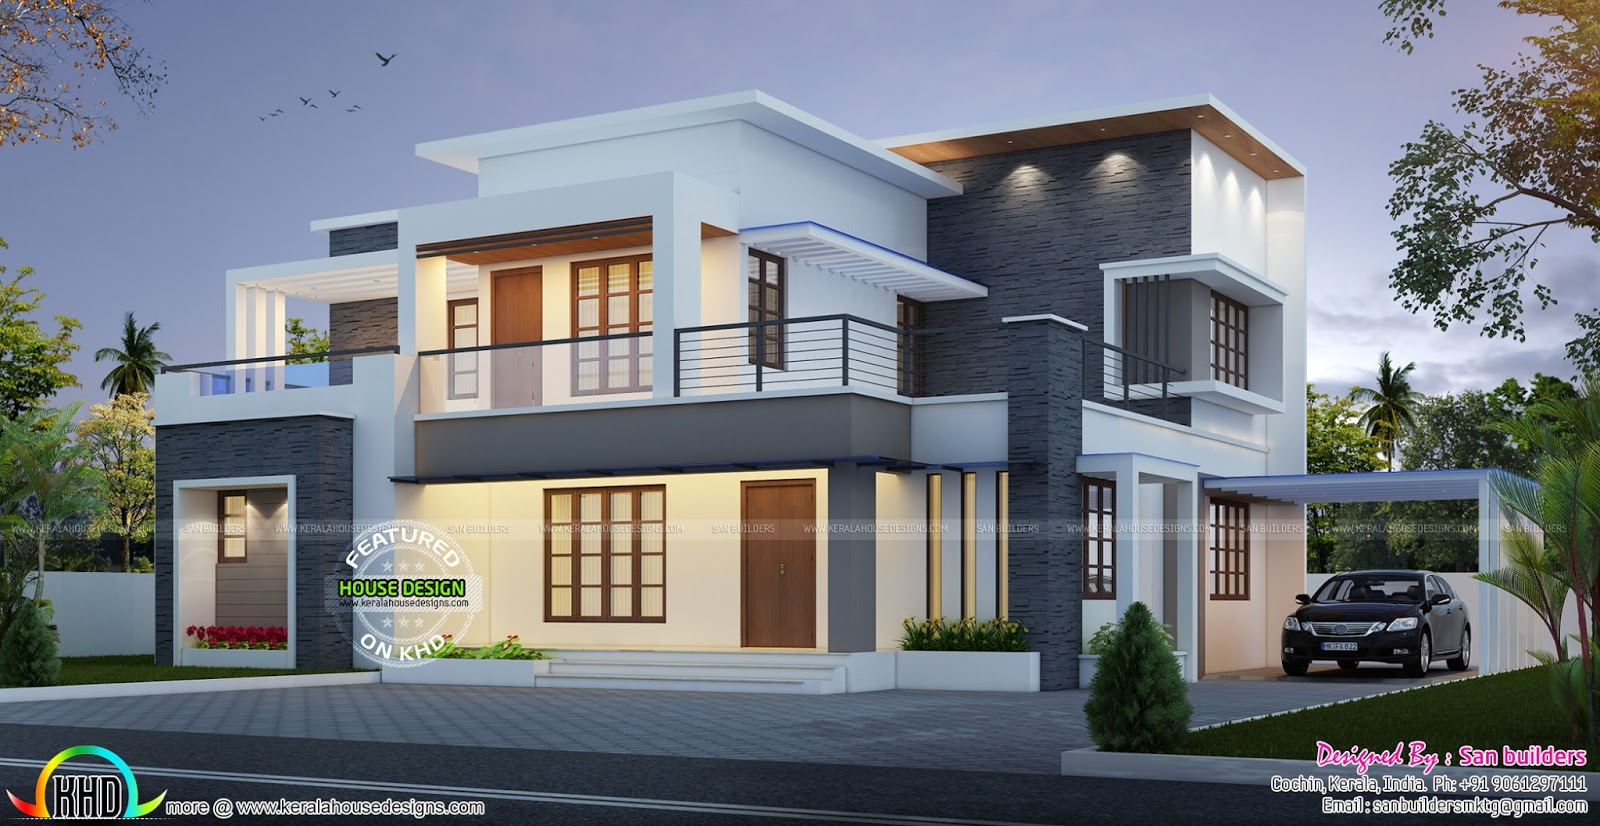 First Floor Elevation Models : House plan and elevation by san builders kerala home